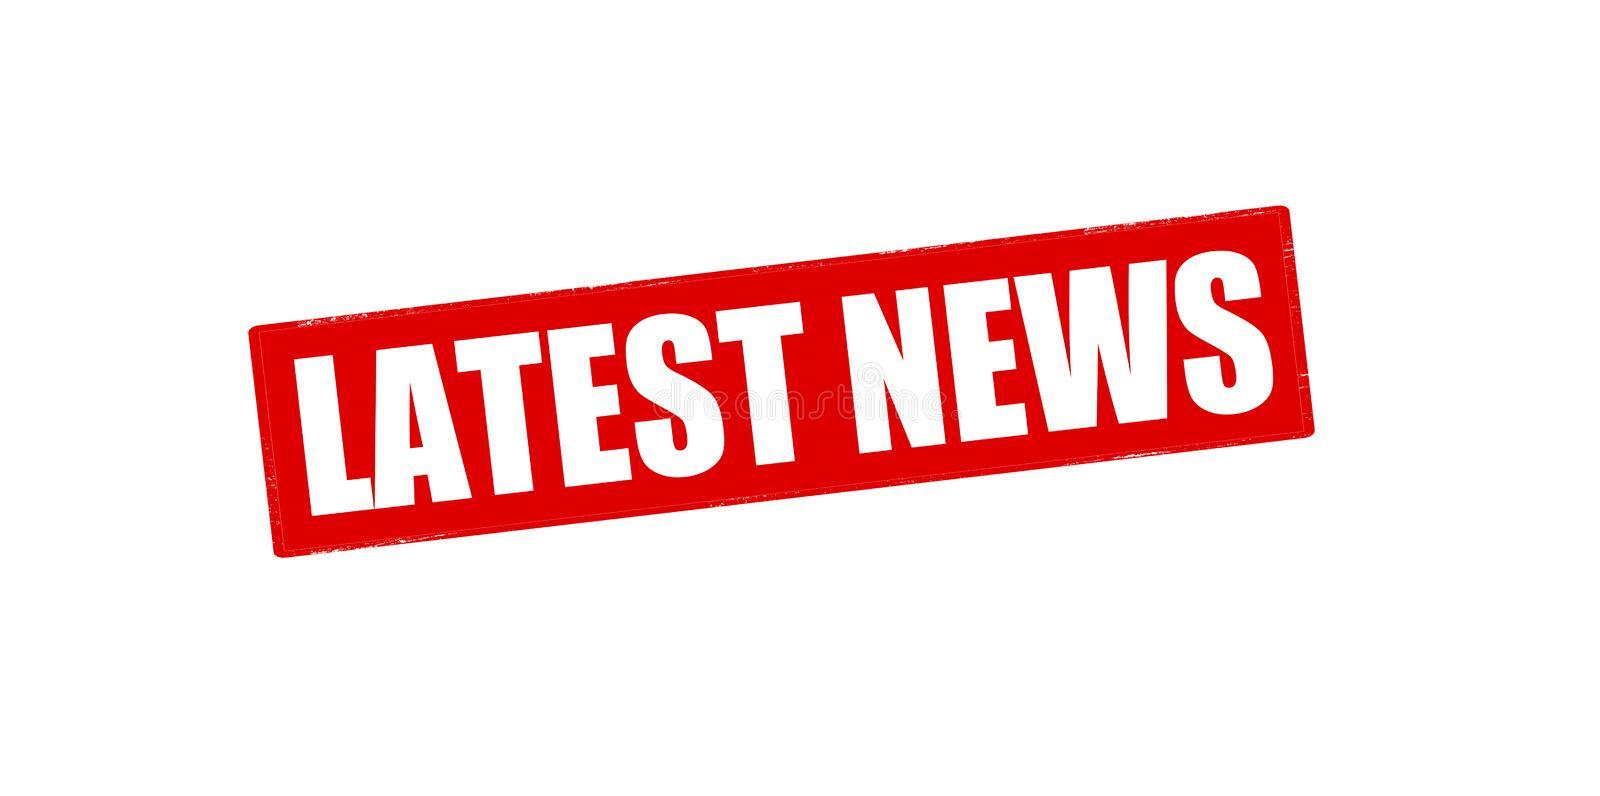 Latest news. Rubber stamp with text latest news inside, illustration royalty free stock photo